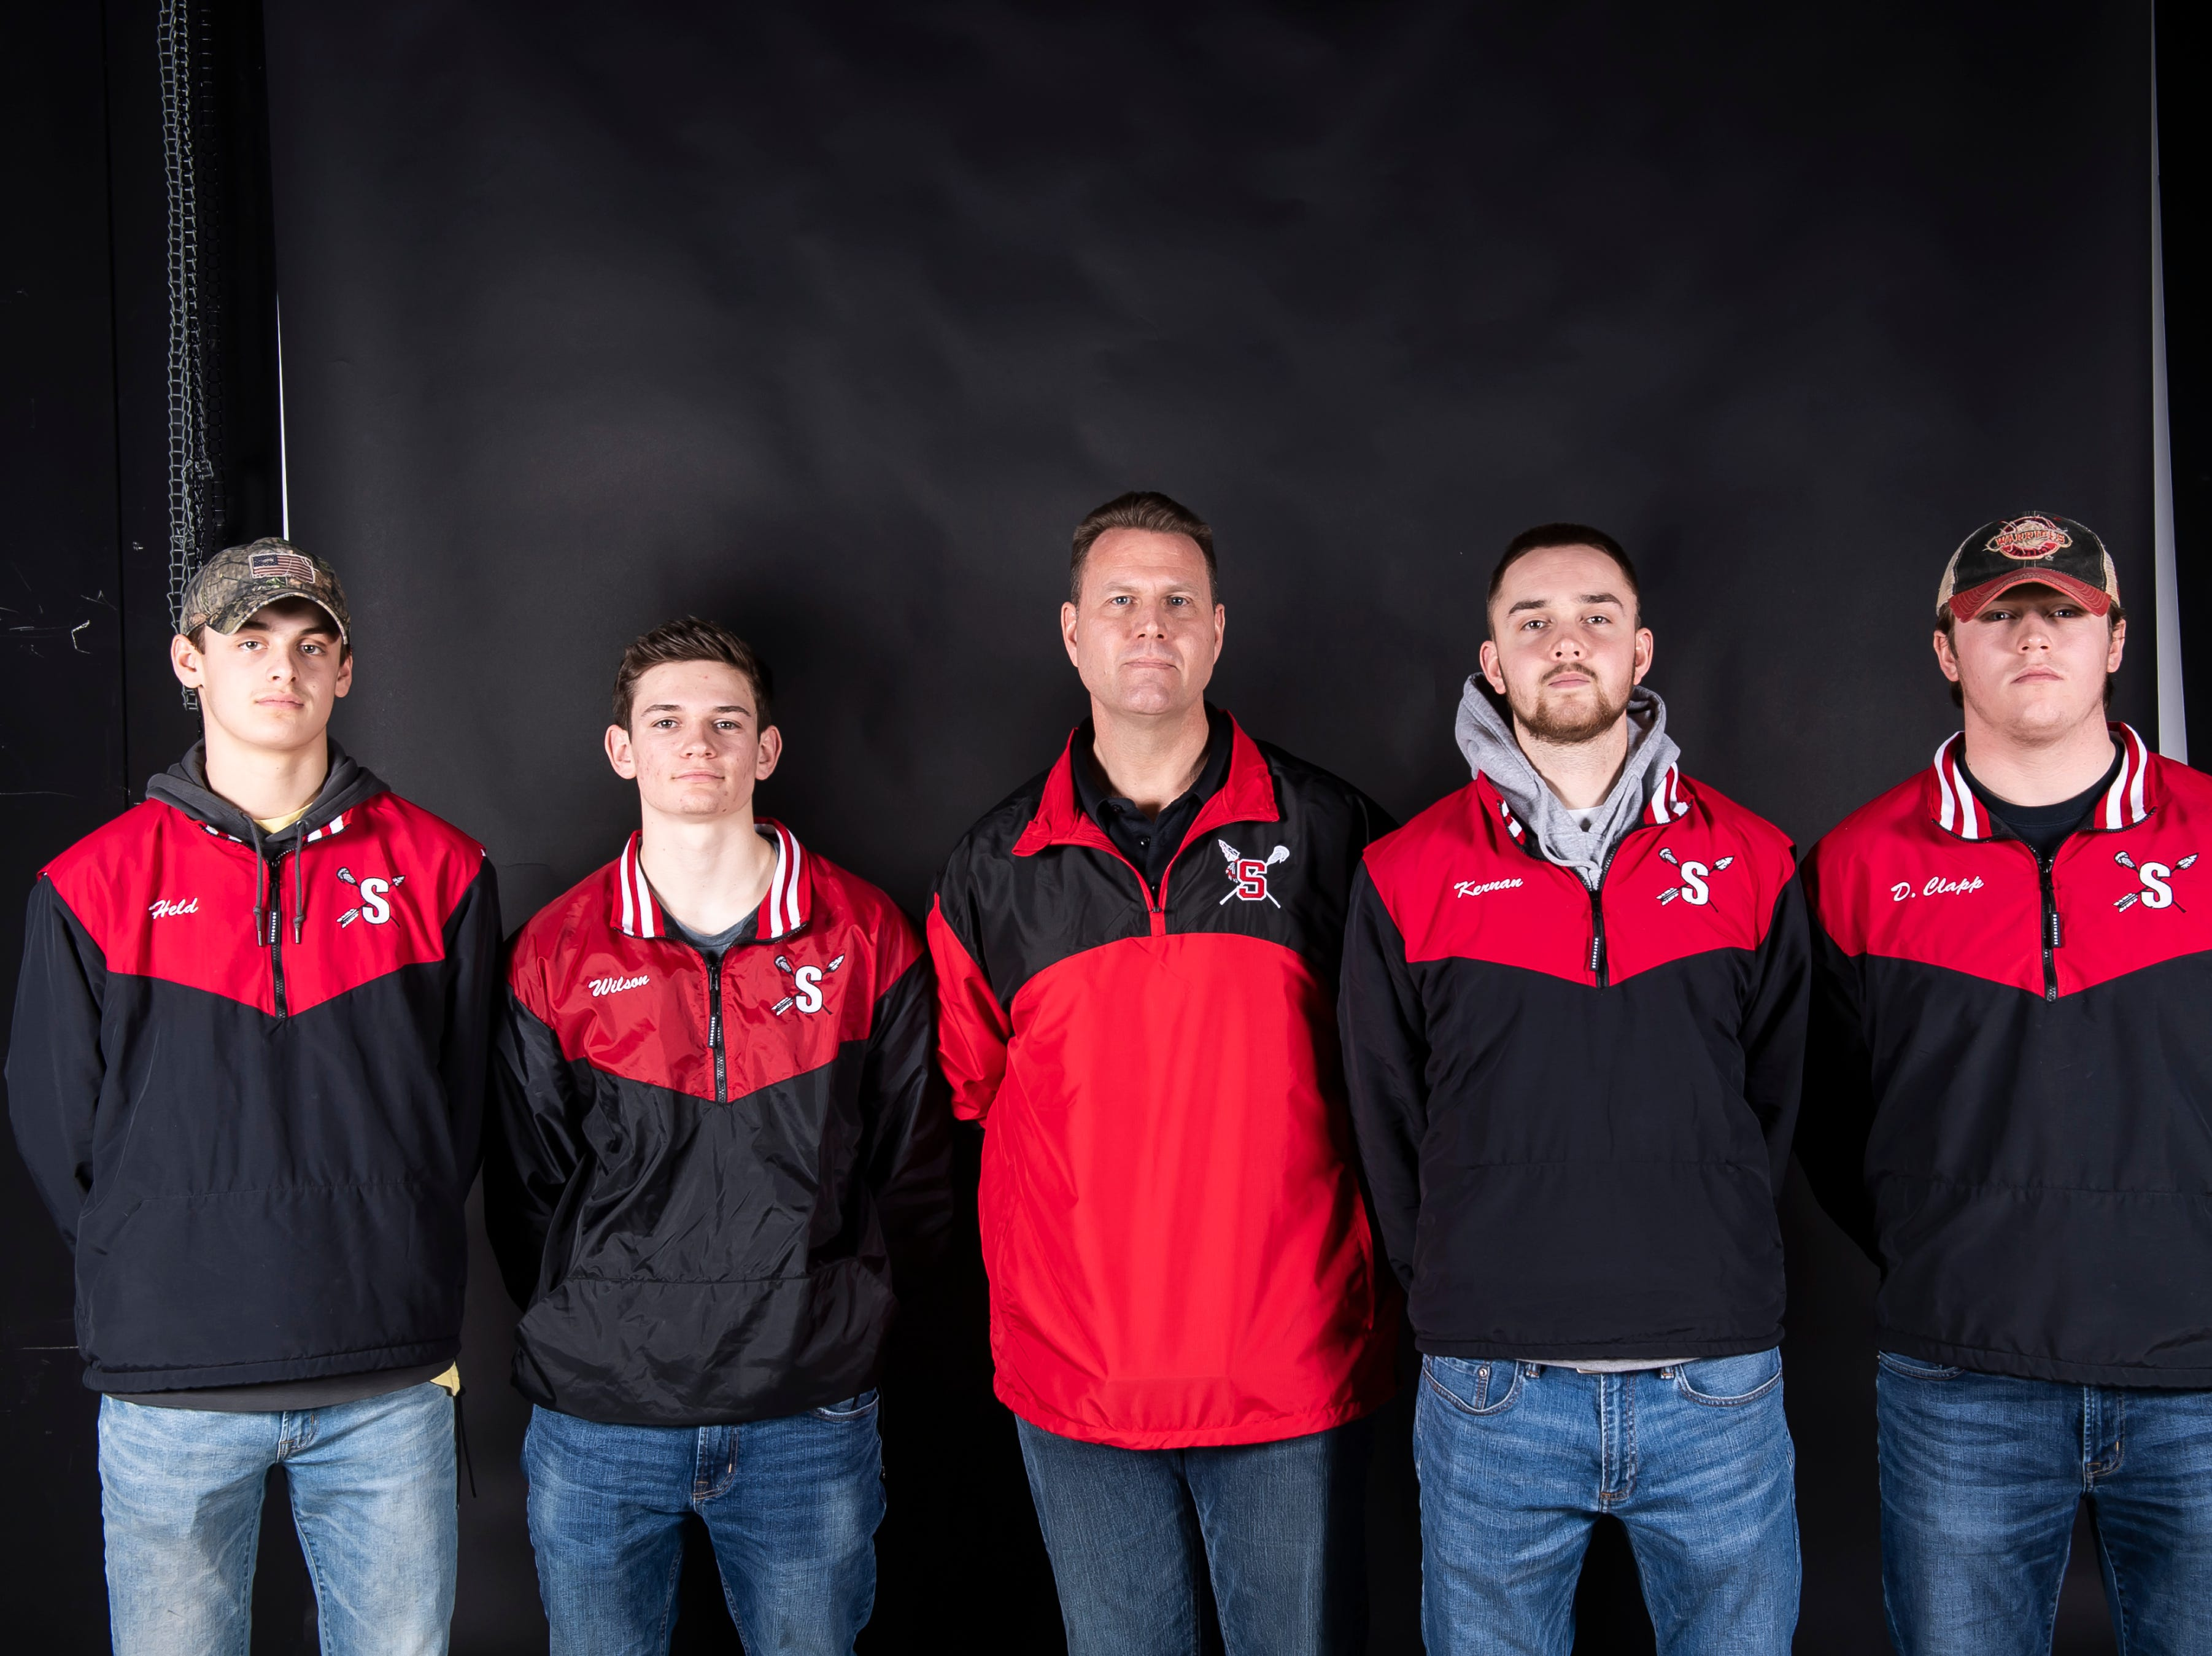 (From left) Susquehannock lacrosse's Gavin Held, Ben Wilson, coach Tom Mayne, Connor Kernan and Daniel Clapp pose in the GameTimePA photo booth during spring sports media day in York Sunday, March 10, 2019.